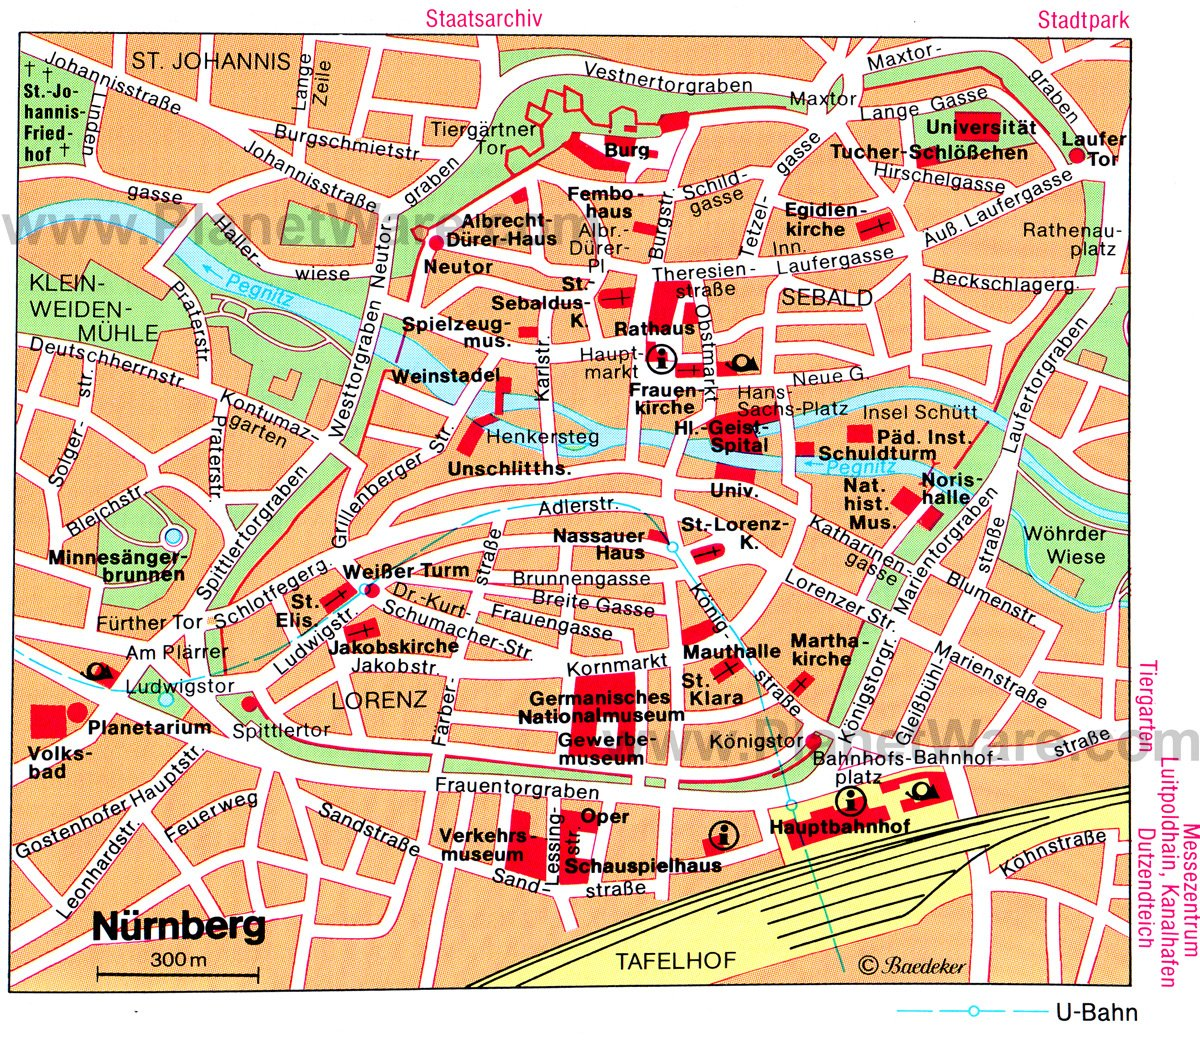 12 Top Tourist Attractions in Nuremberg and Easy Day Trips – Munich Tourist Attractions Map